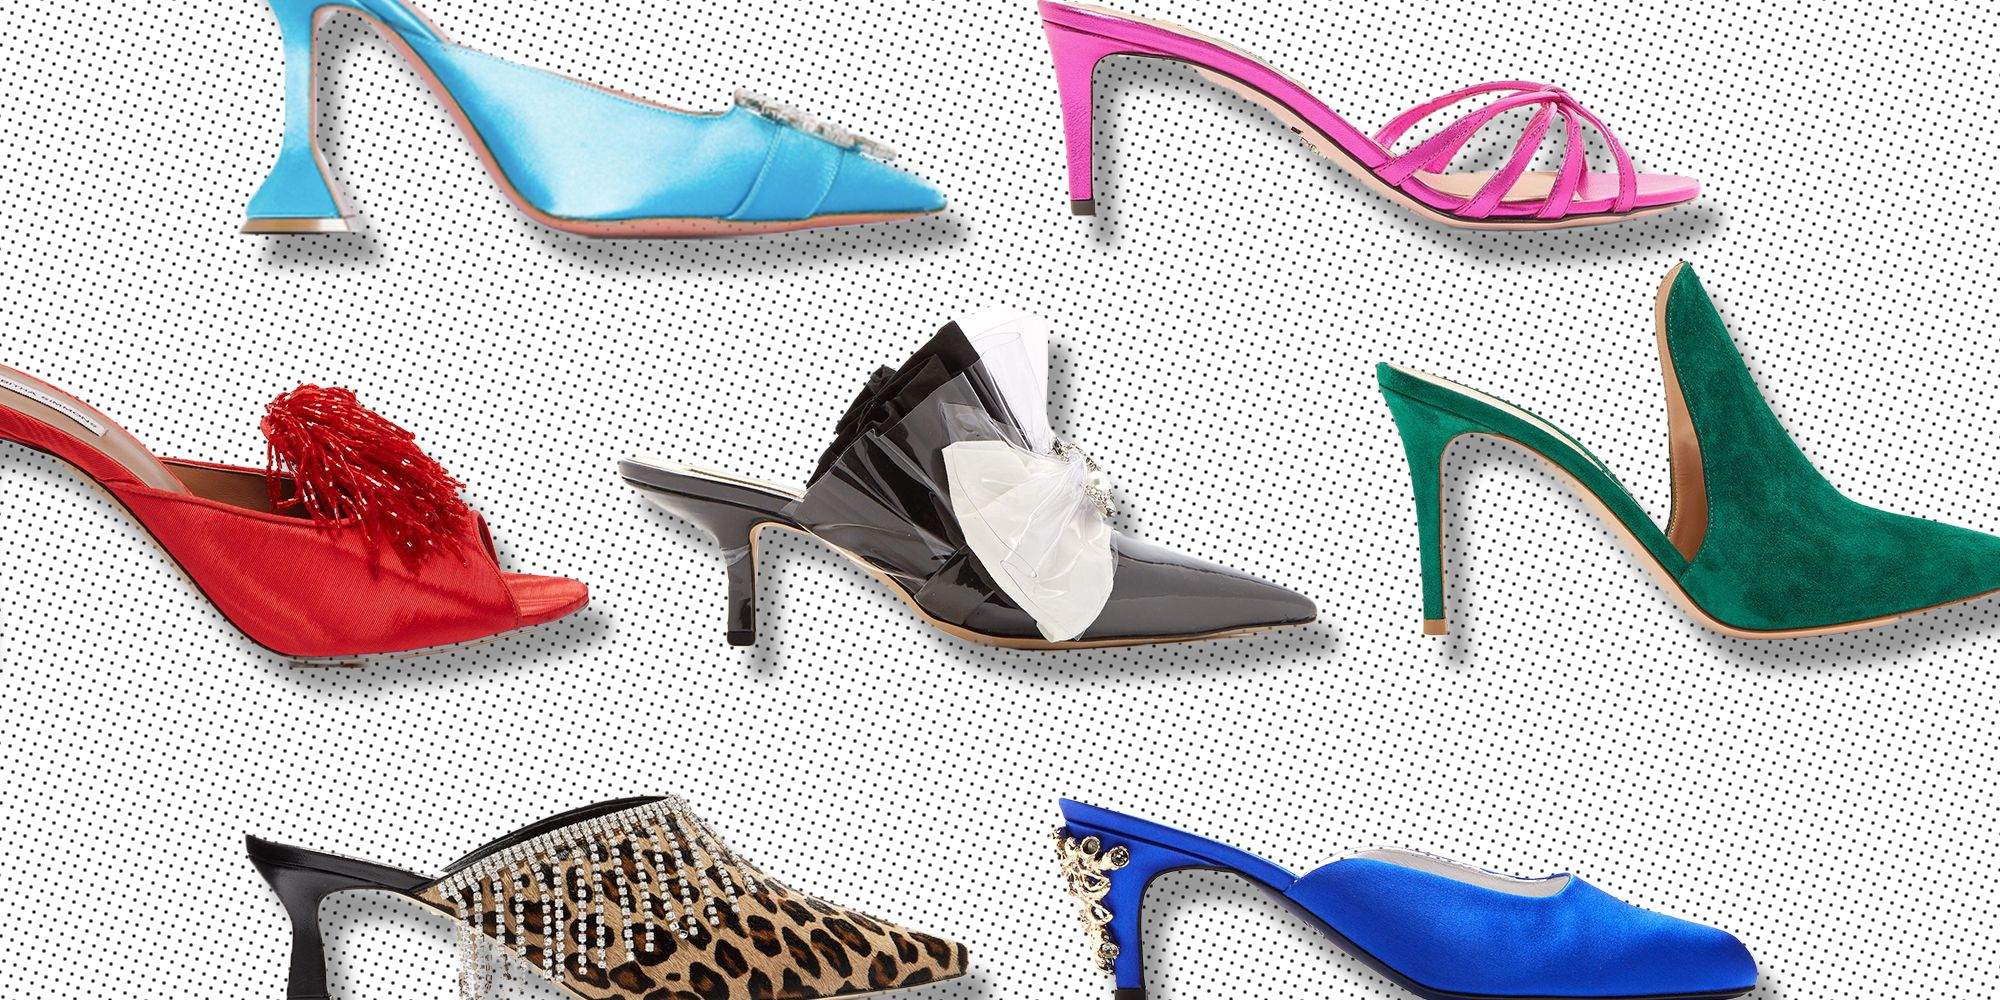 Mule Shoes For Easy On-And-Off Eveningwear